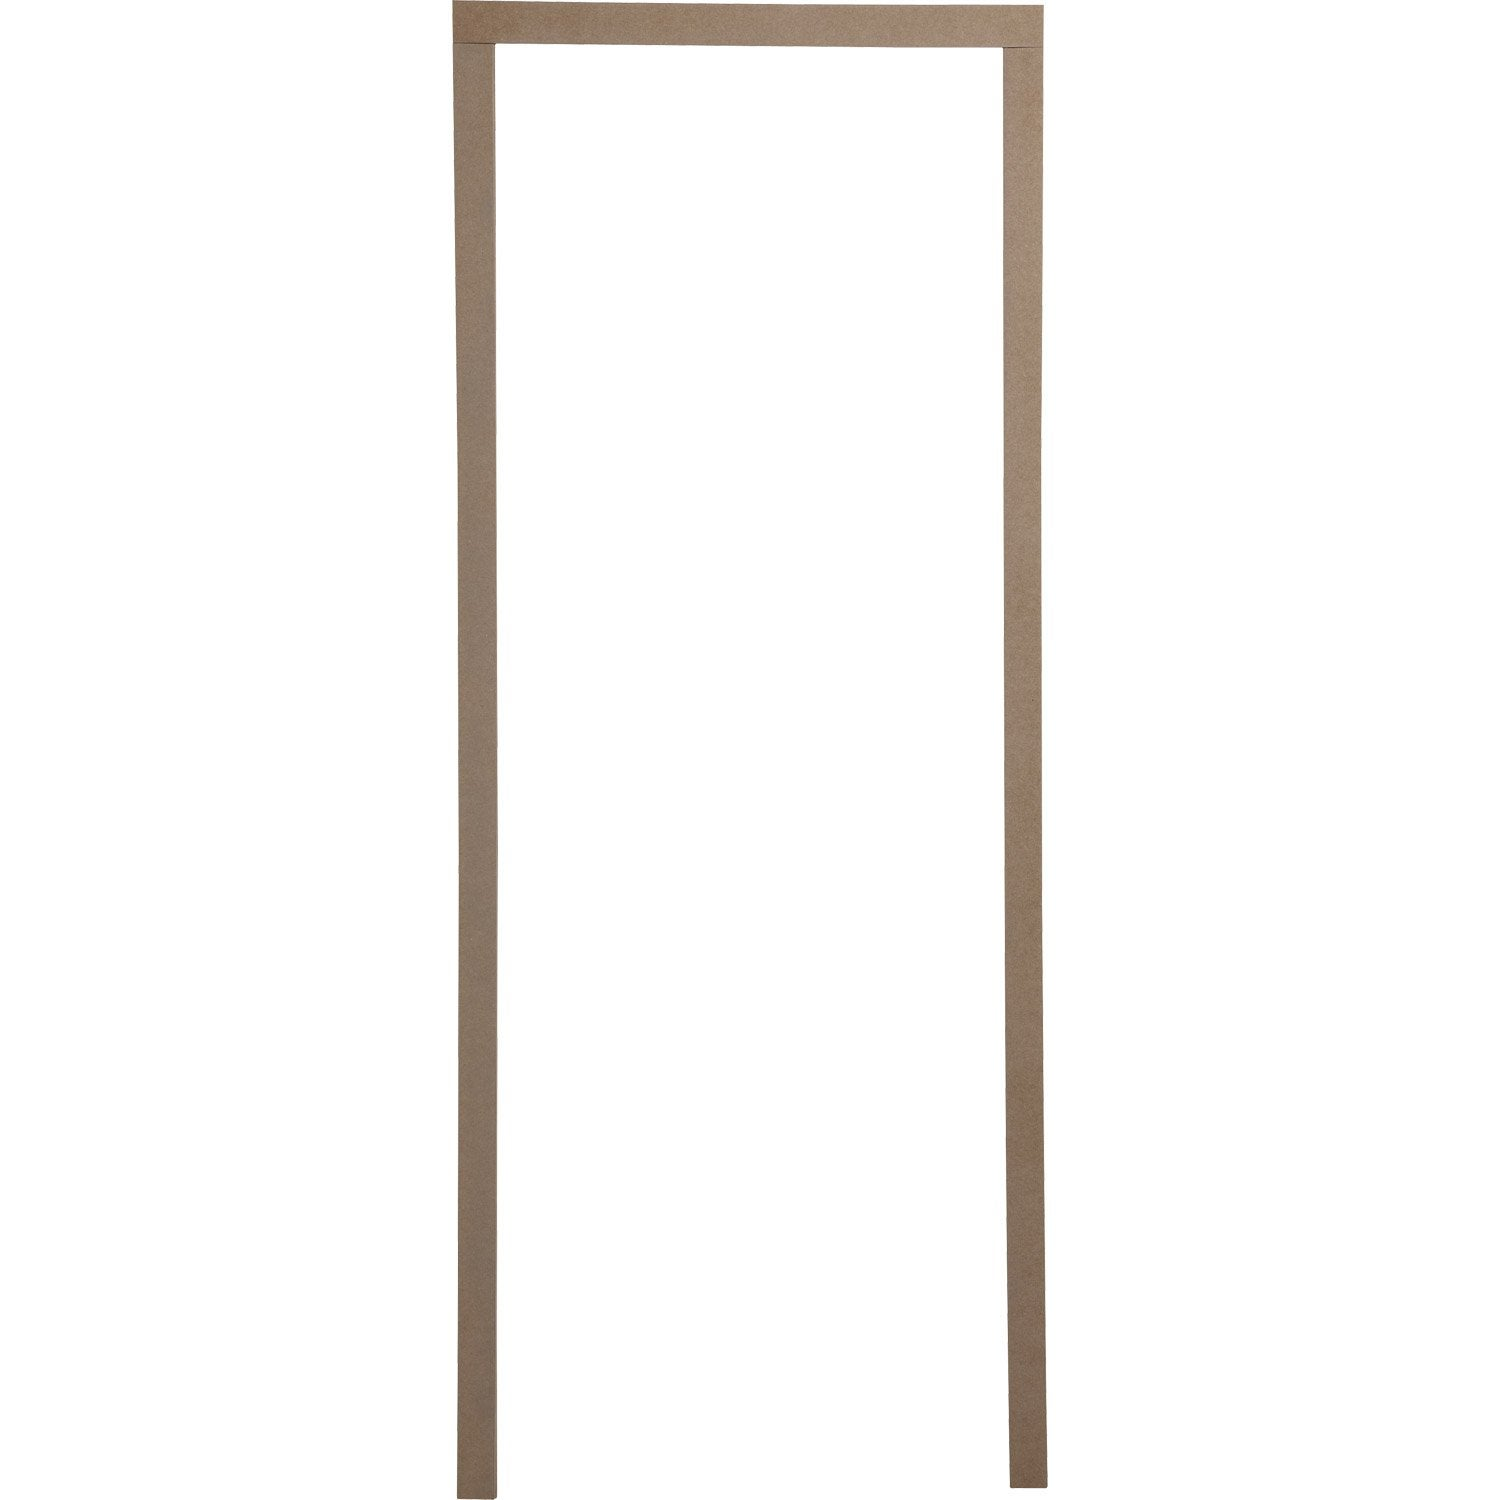 Habillage de porte en m dium pour huisserie joues de 7 5 for Huisserie de porte definition